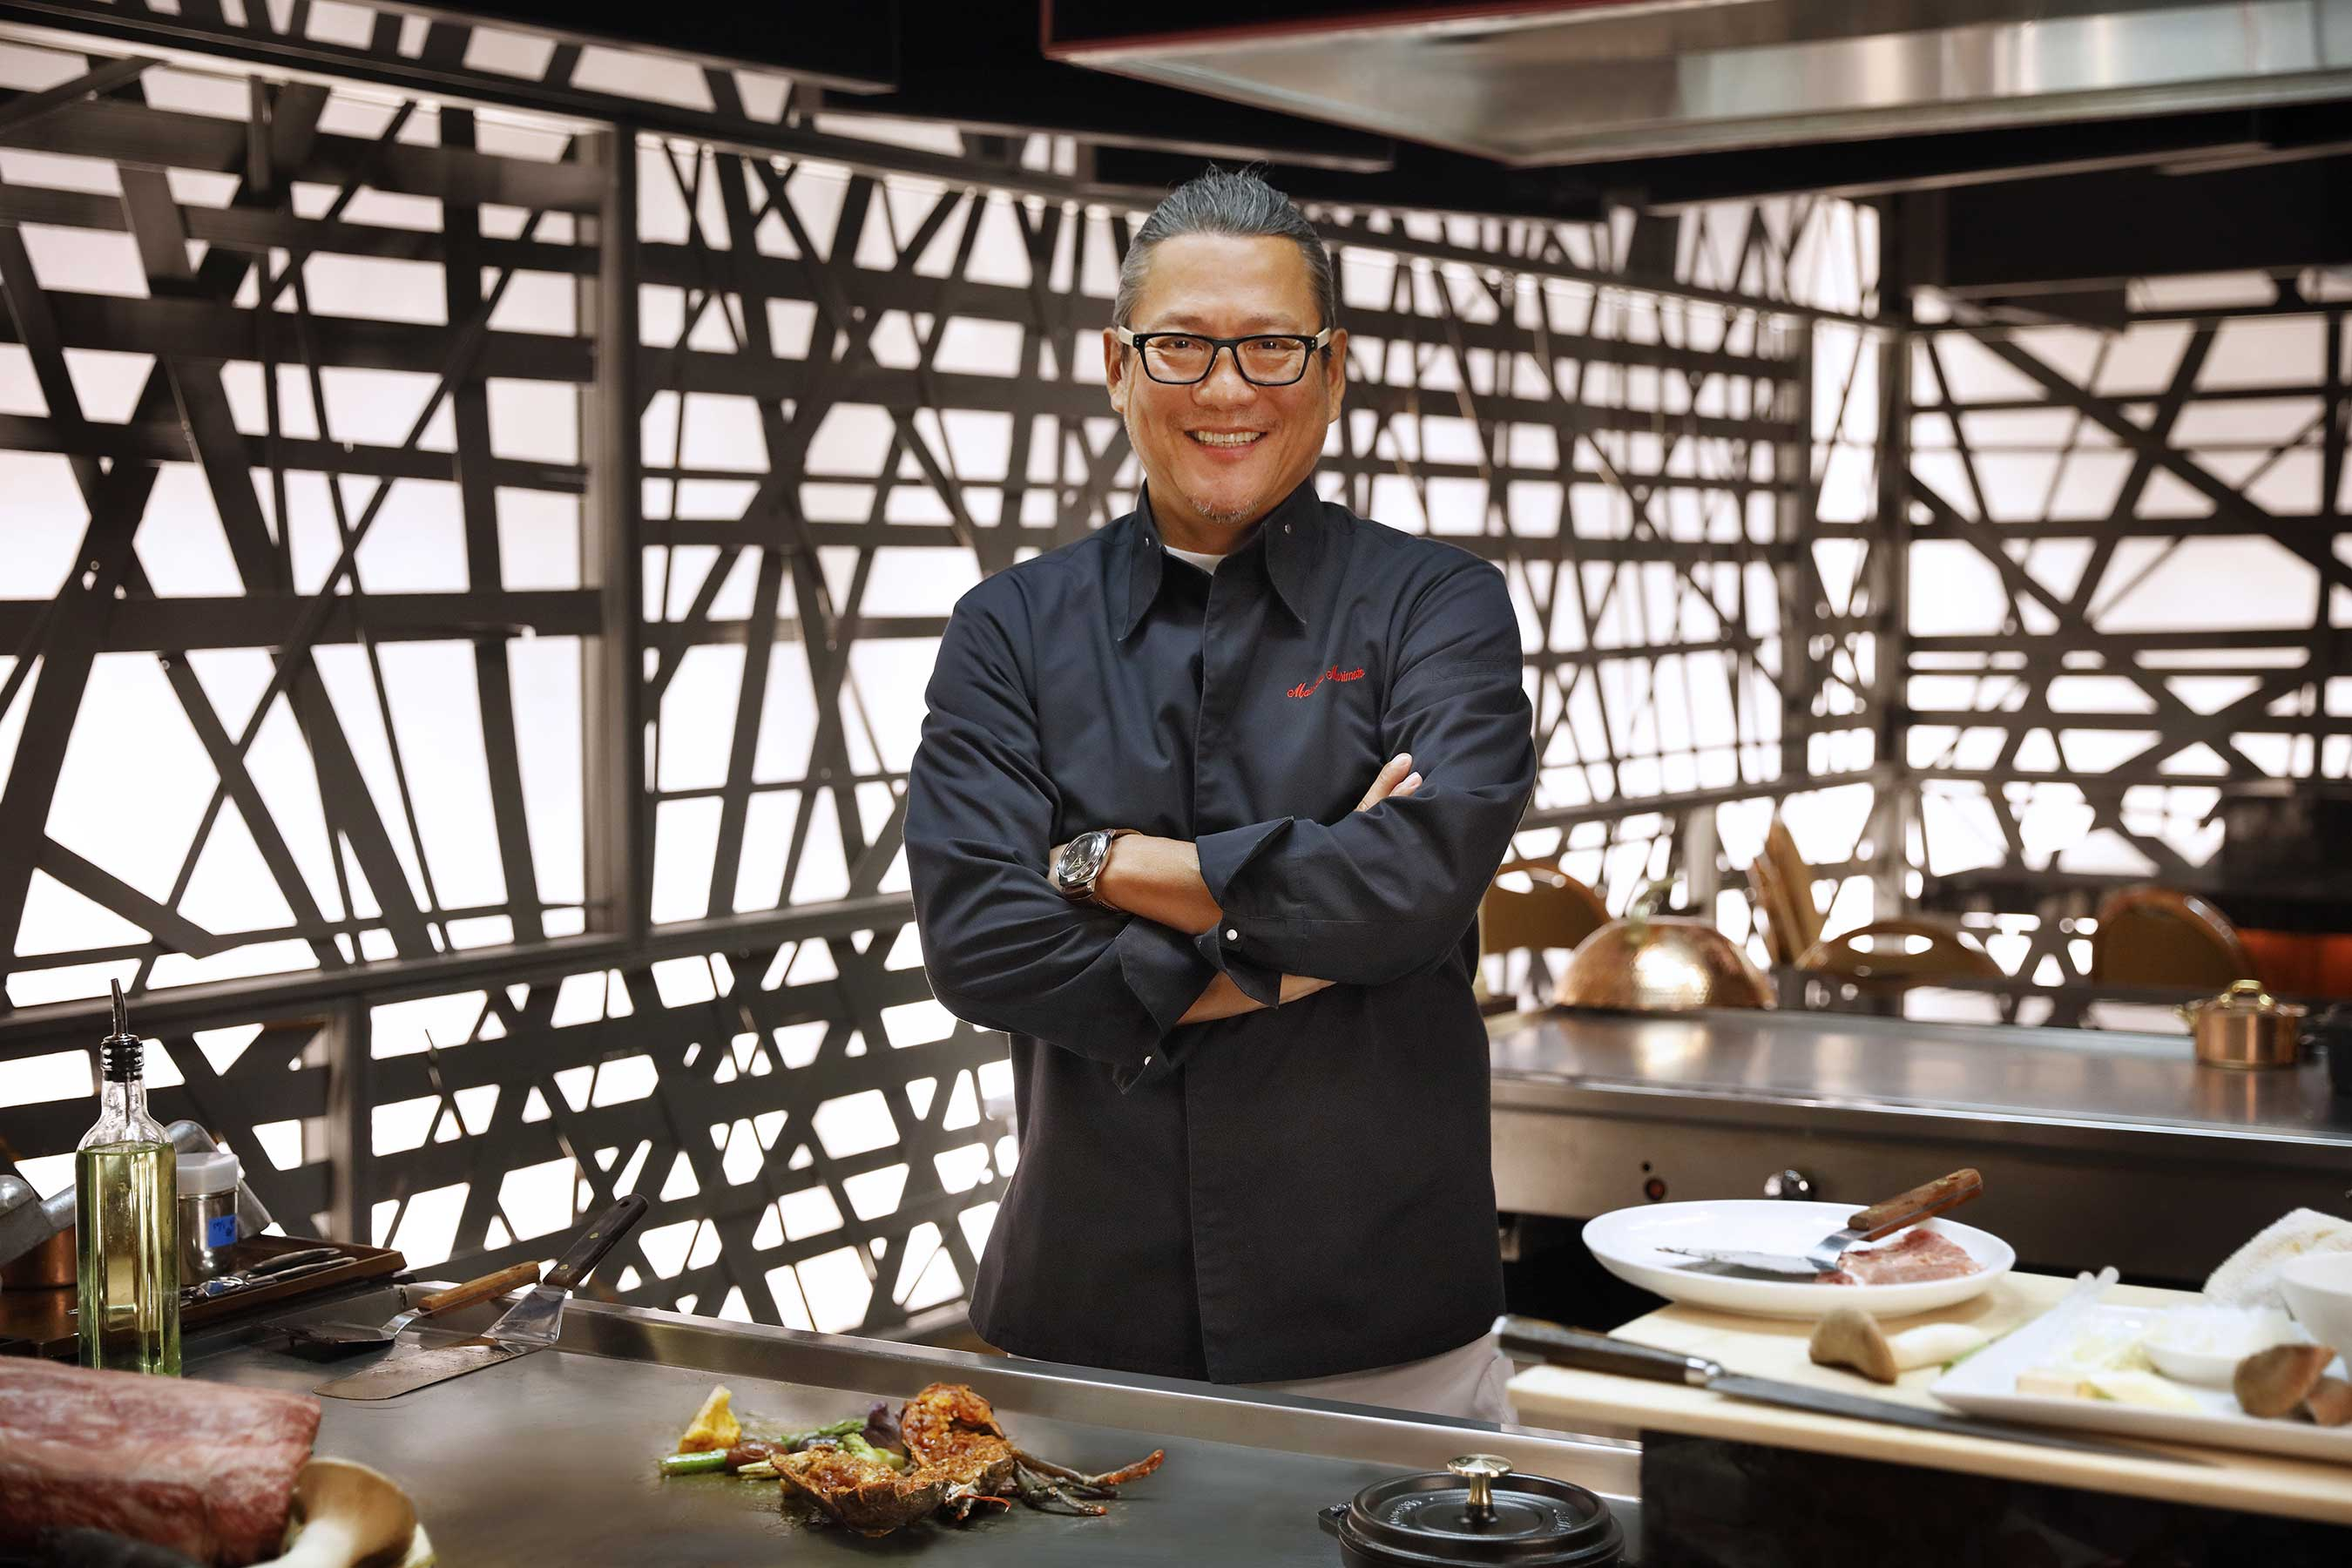 chef-morimoto-at-the-teppan-tables-5-hr